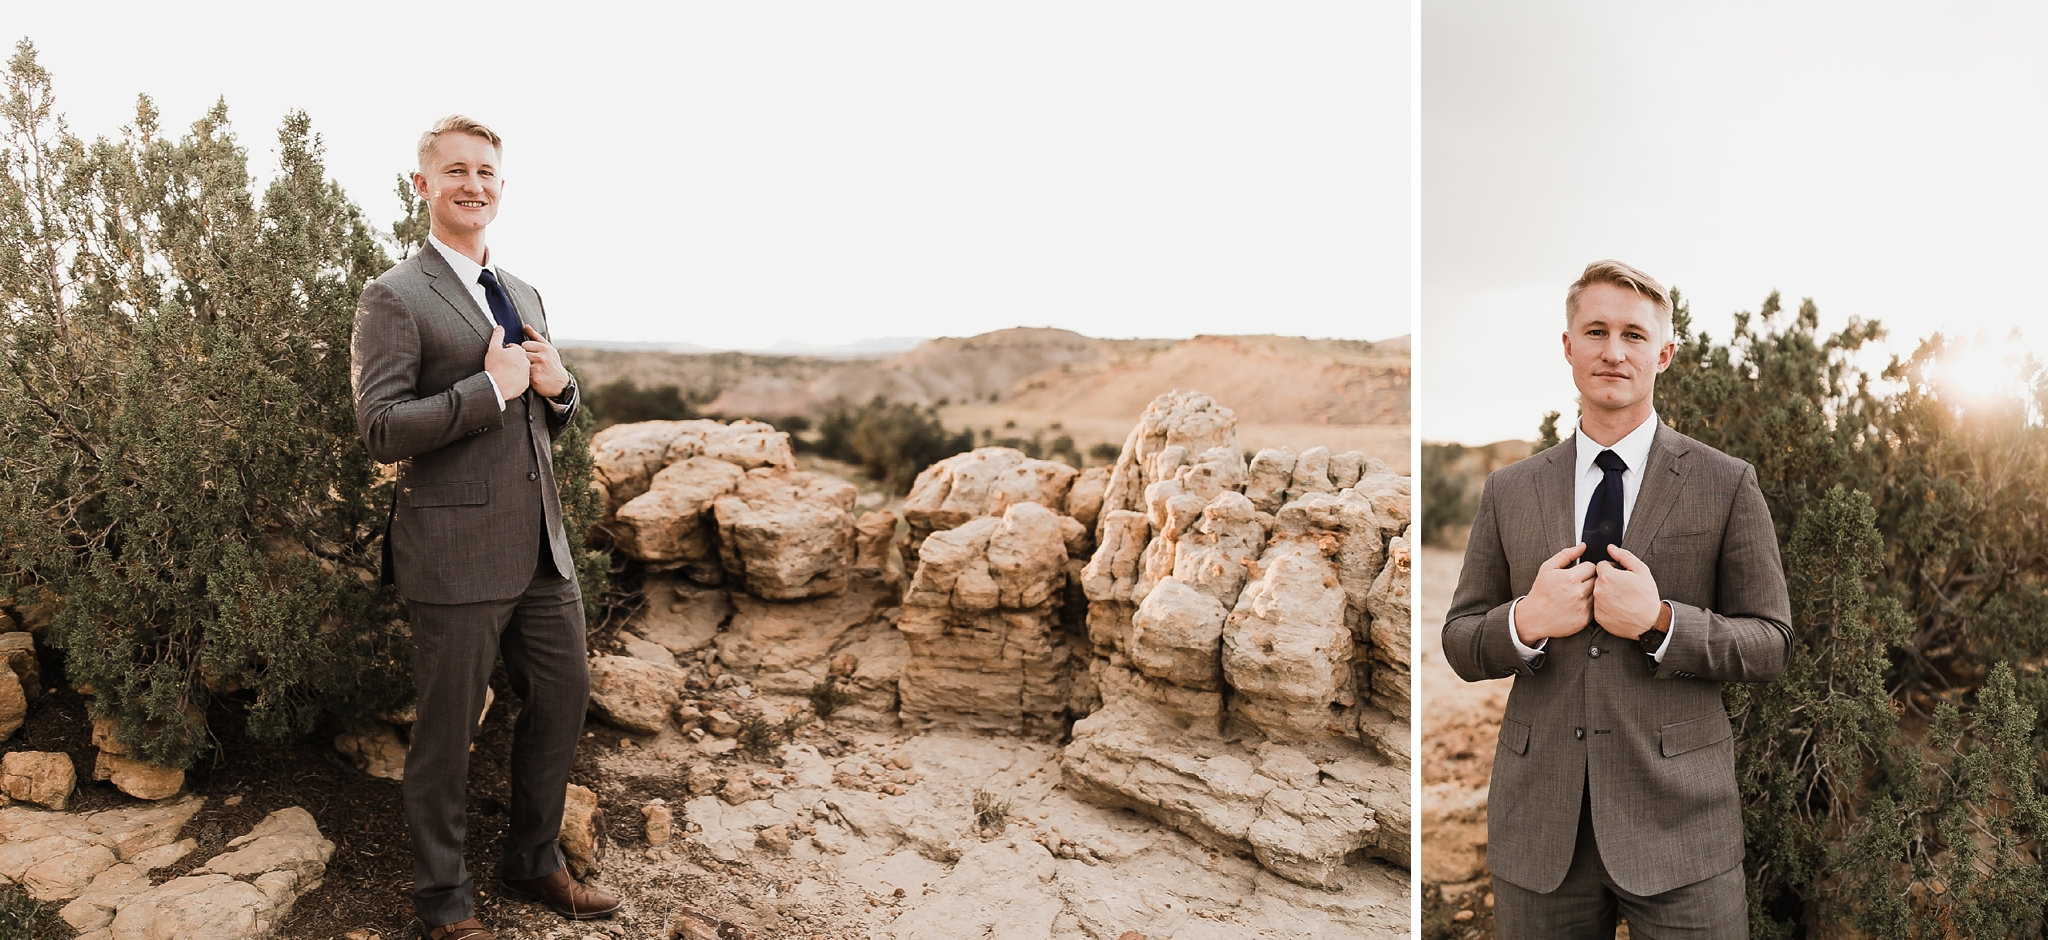 Alicia+lucia+photography+-+albuquerque+wedding+photographer+-+santa+fe+wedding+photography+-+new+mexico+wedding+photographer+-+new+mexico+wedding+-+new+mexico+elopement+-+elopment+-+mountain+elopement_0014.jpg